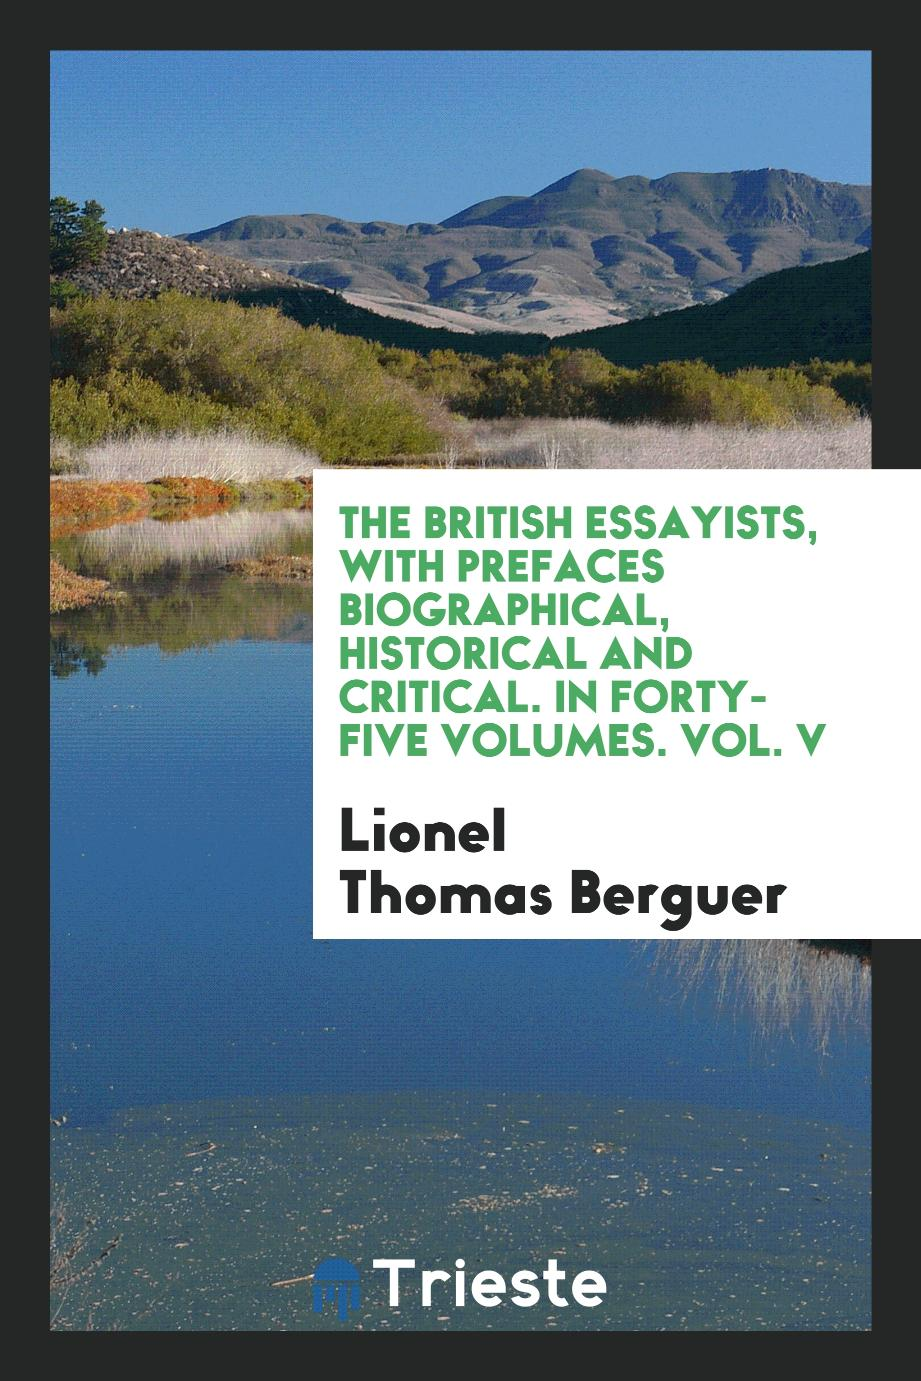 The British essayists, with prefaces biographical, historical and critical. In forty-five volumes. Vol. V